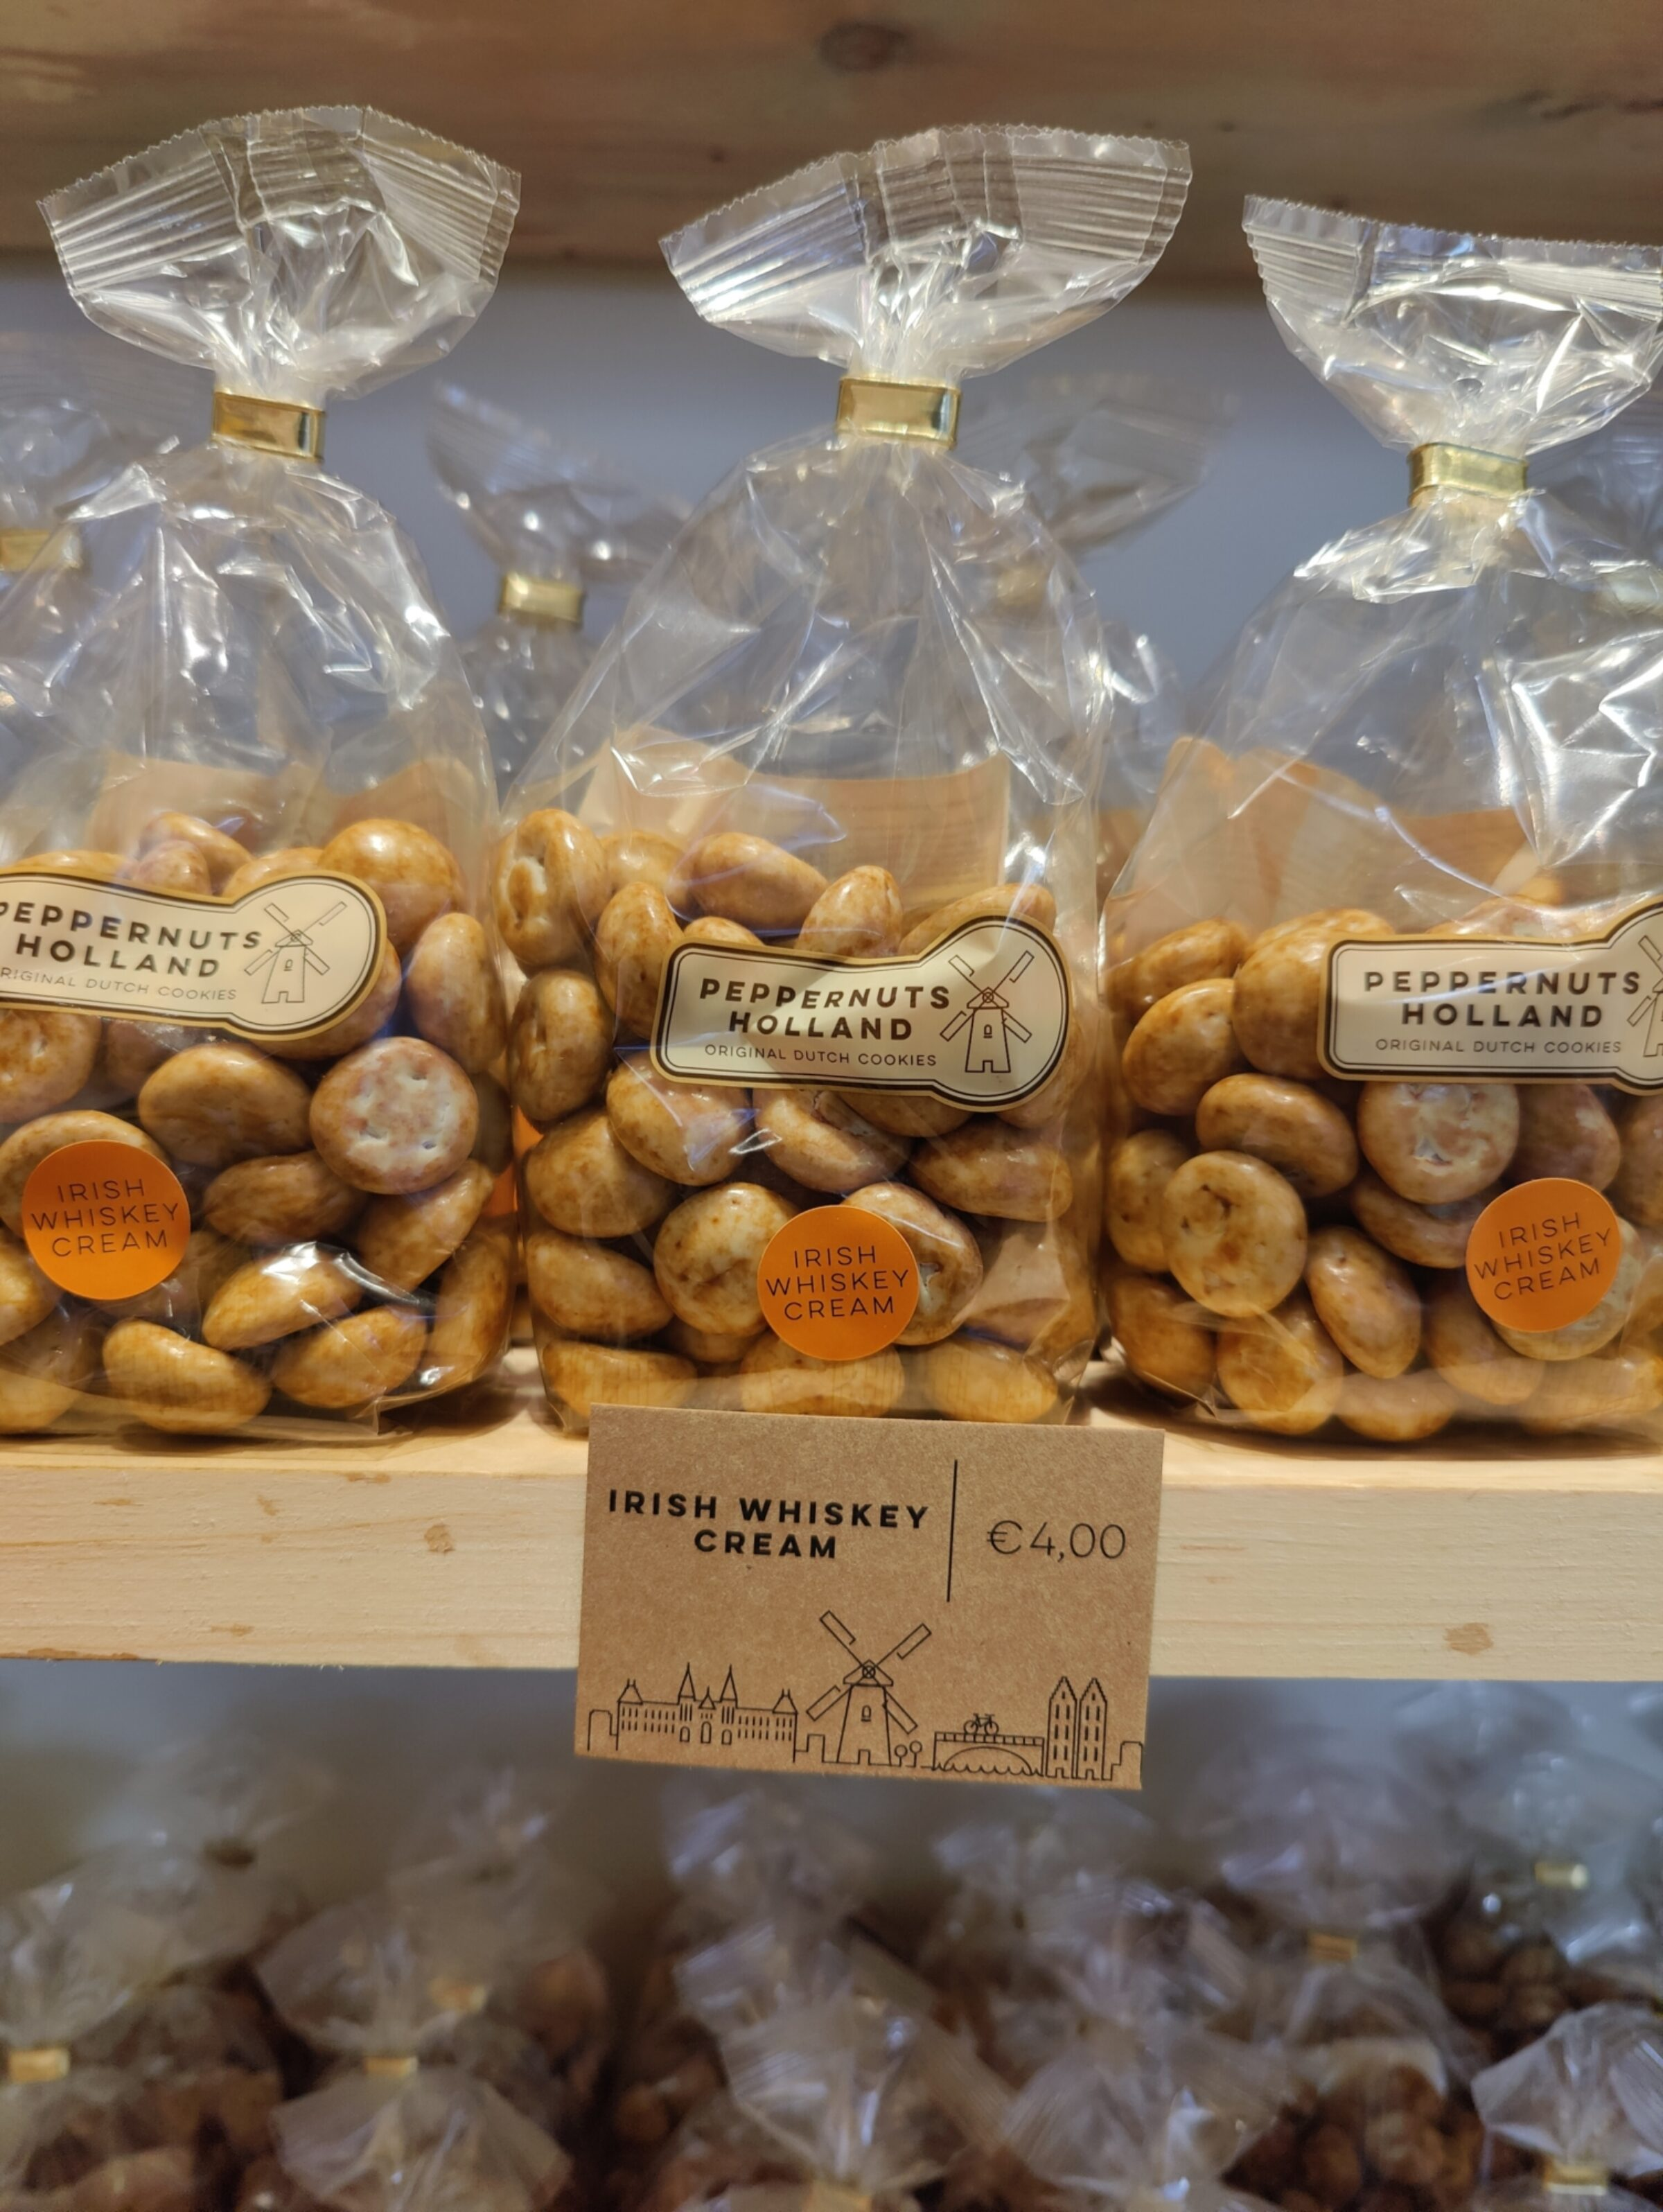 Peppernuts Holland Enschede 3